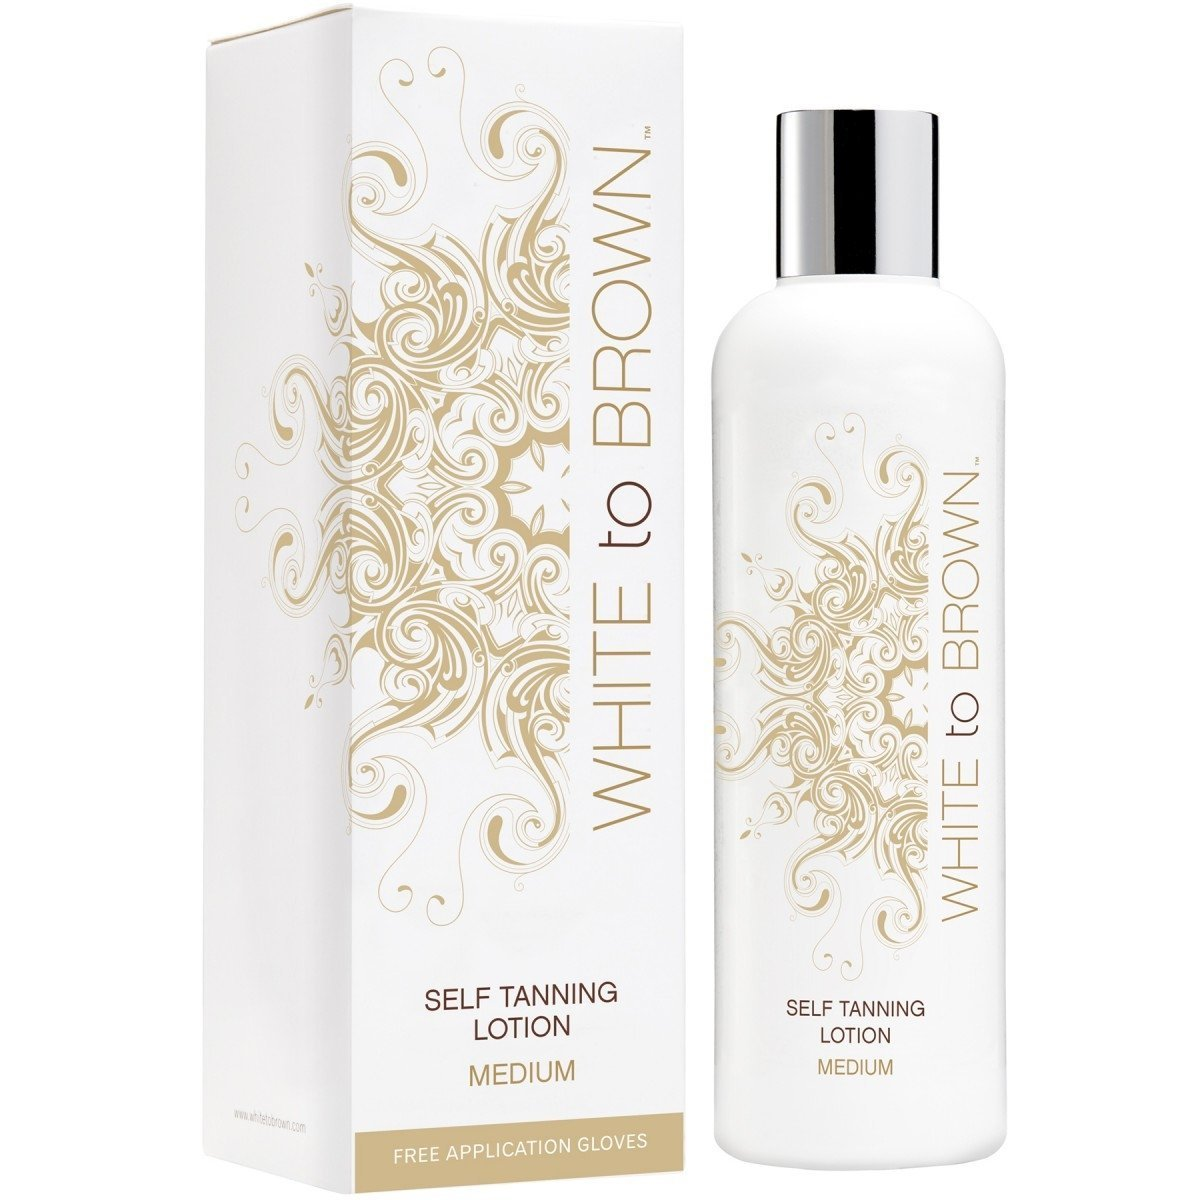 58025d11d3d WHITE to BROWN Self Tanning Lotion, Medium, 250 ml: Amazon.co.uk: Beauty